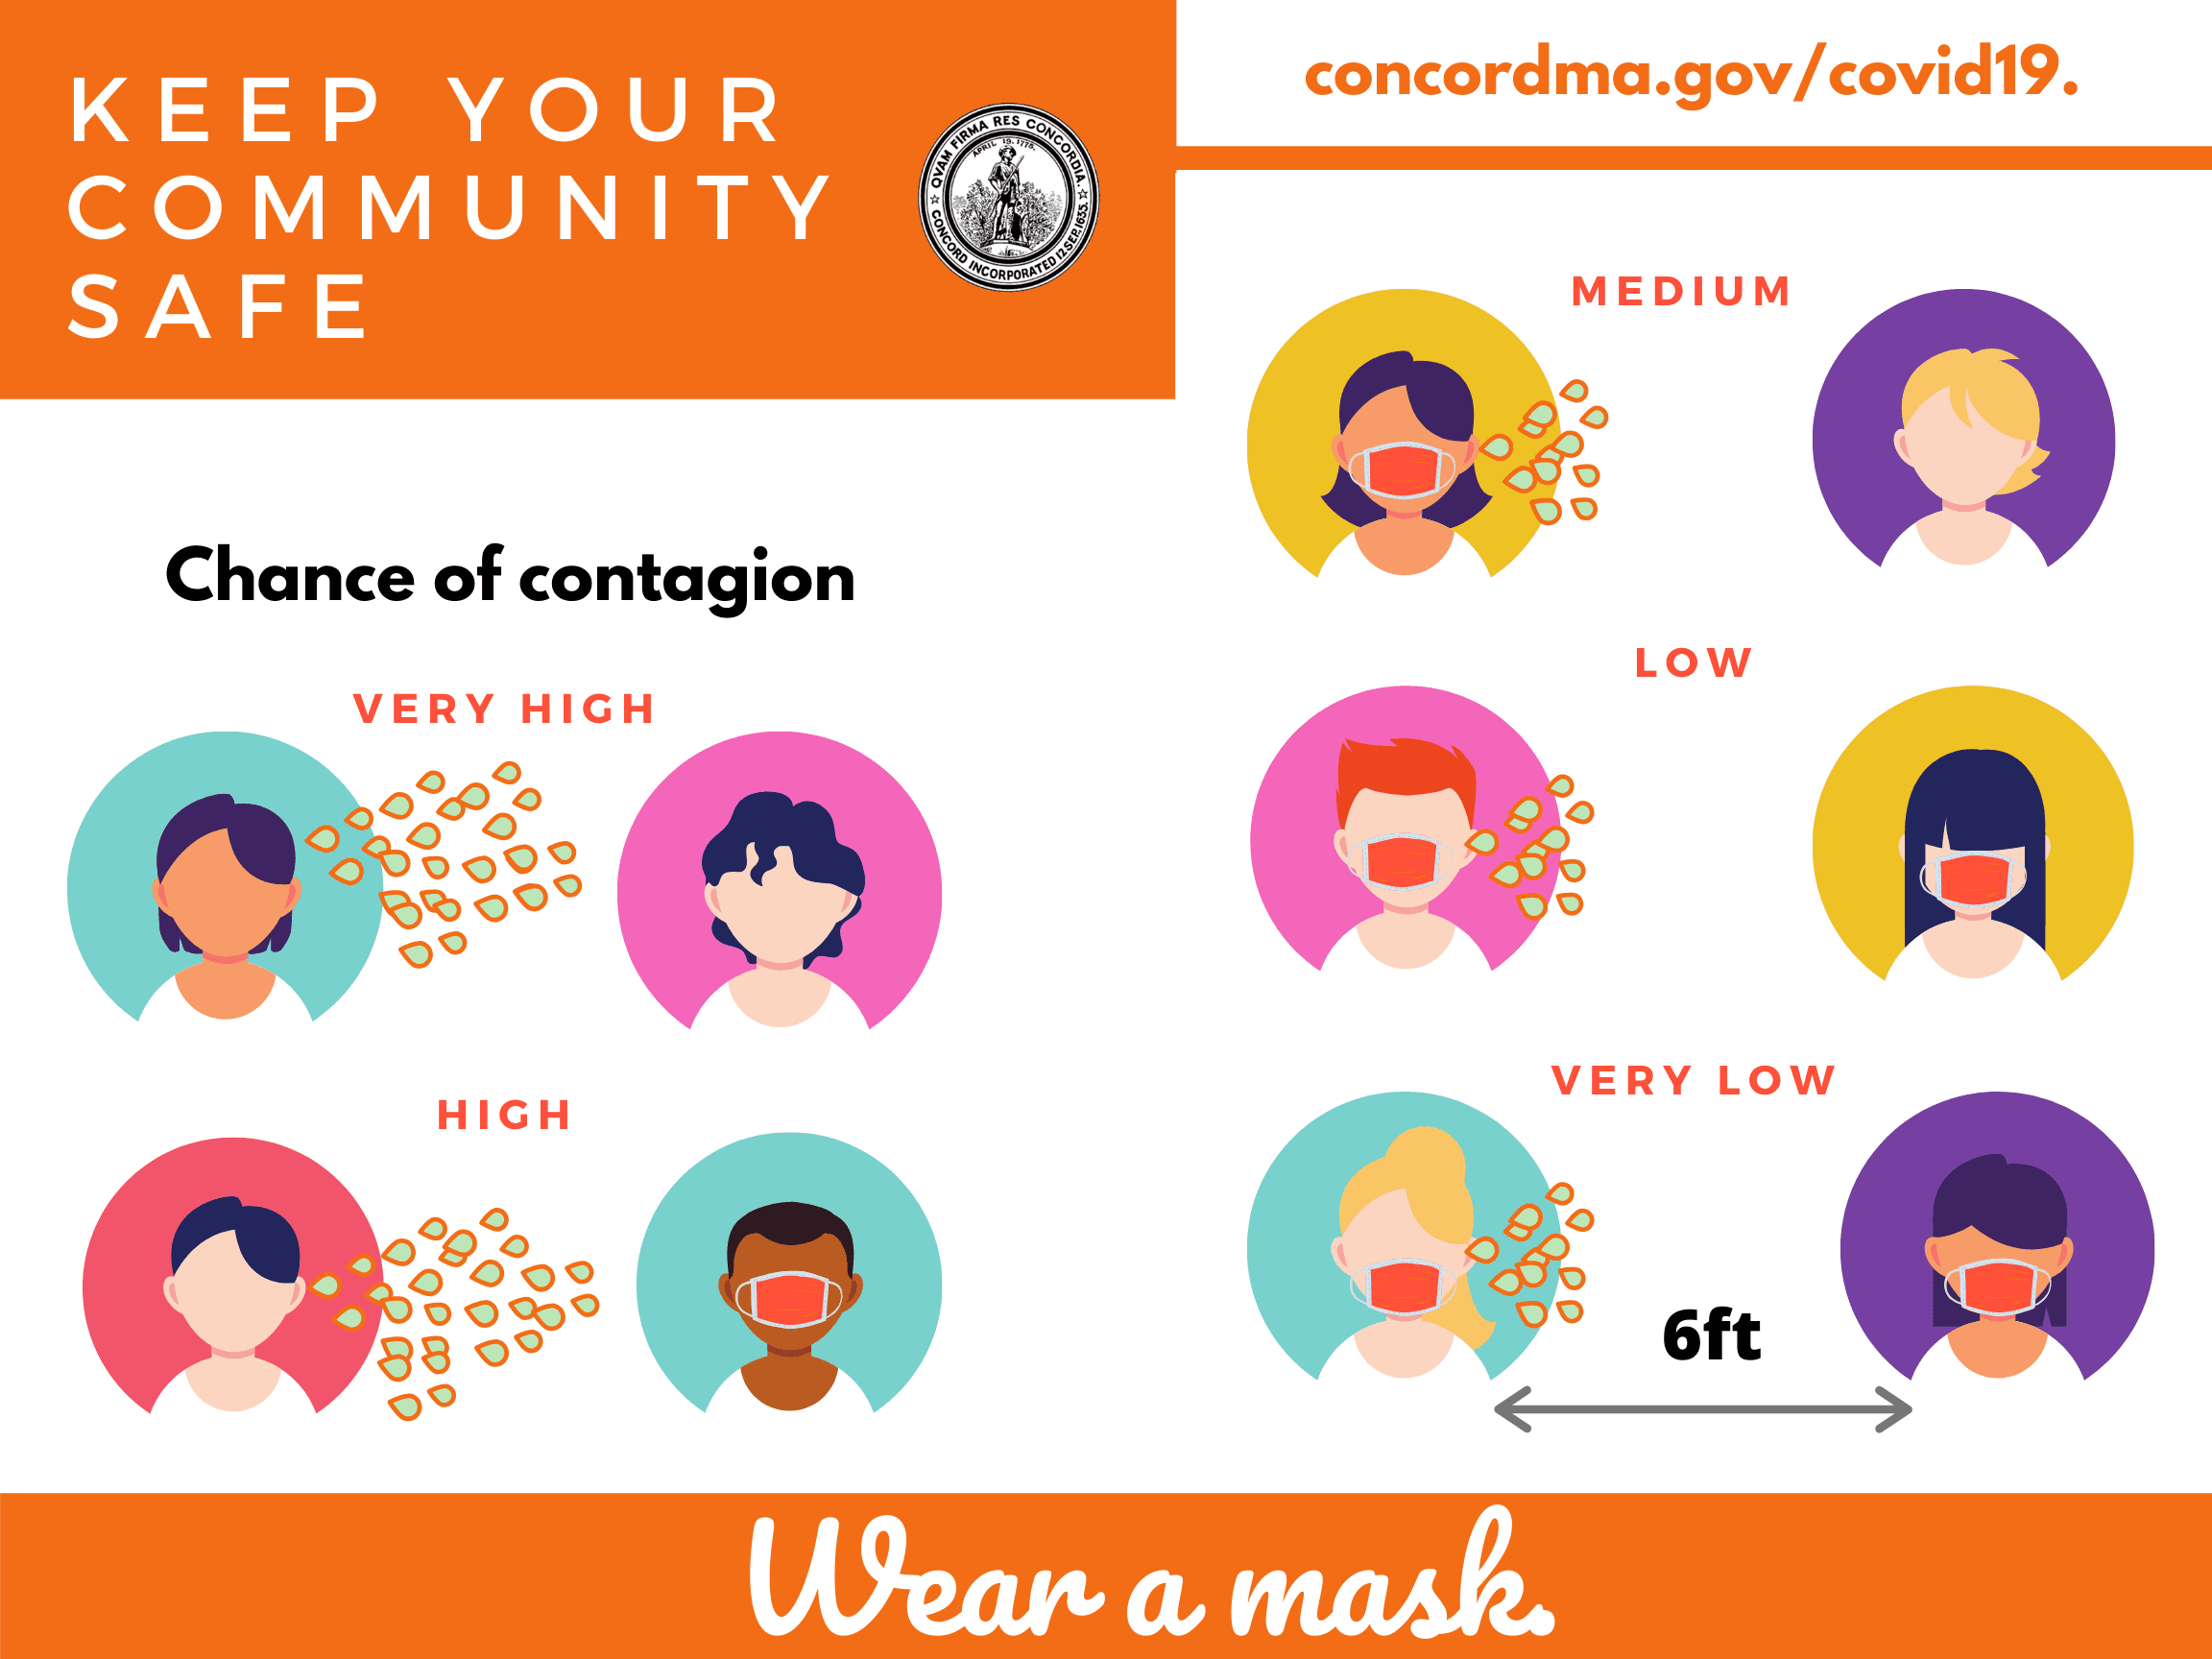 wear a mask, keep 6-10 ft away from others, shows contagion risks based on mask wearing